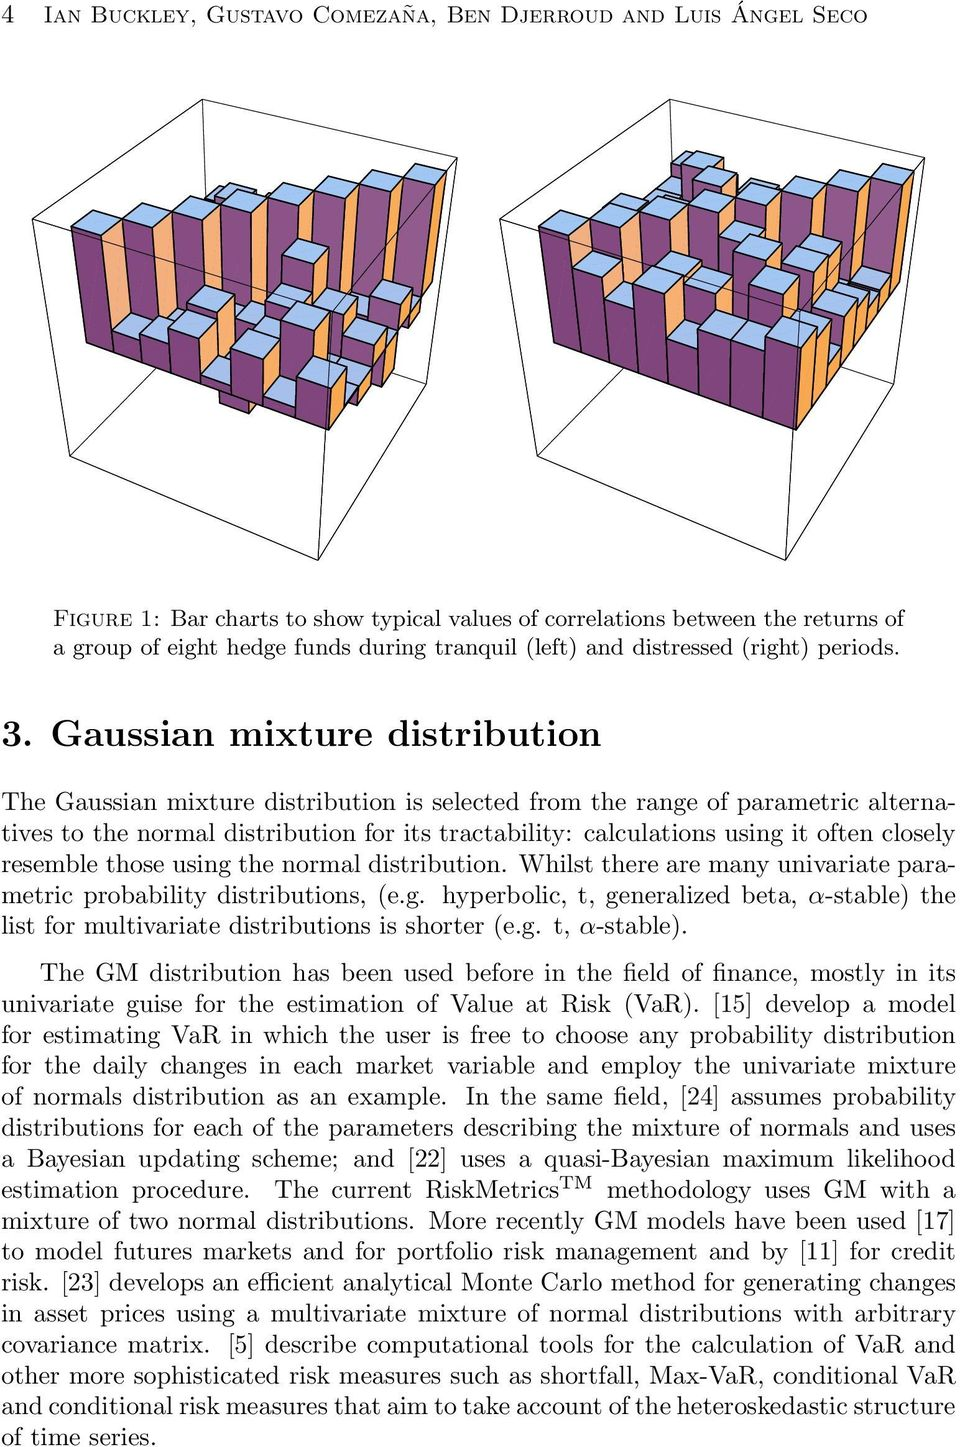 Gaussian mixture distribution The Gaussian mixture distribution is selected from the range of parametric alternatives to the normal distribution for its tractability: calculations using it often